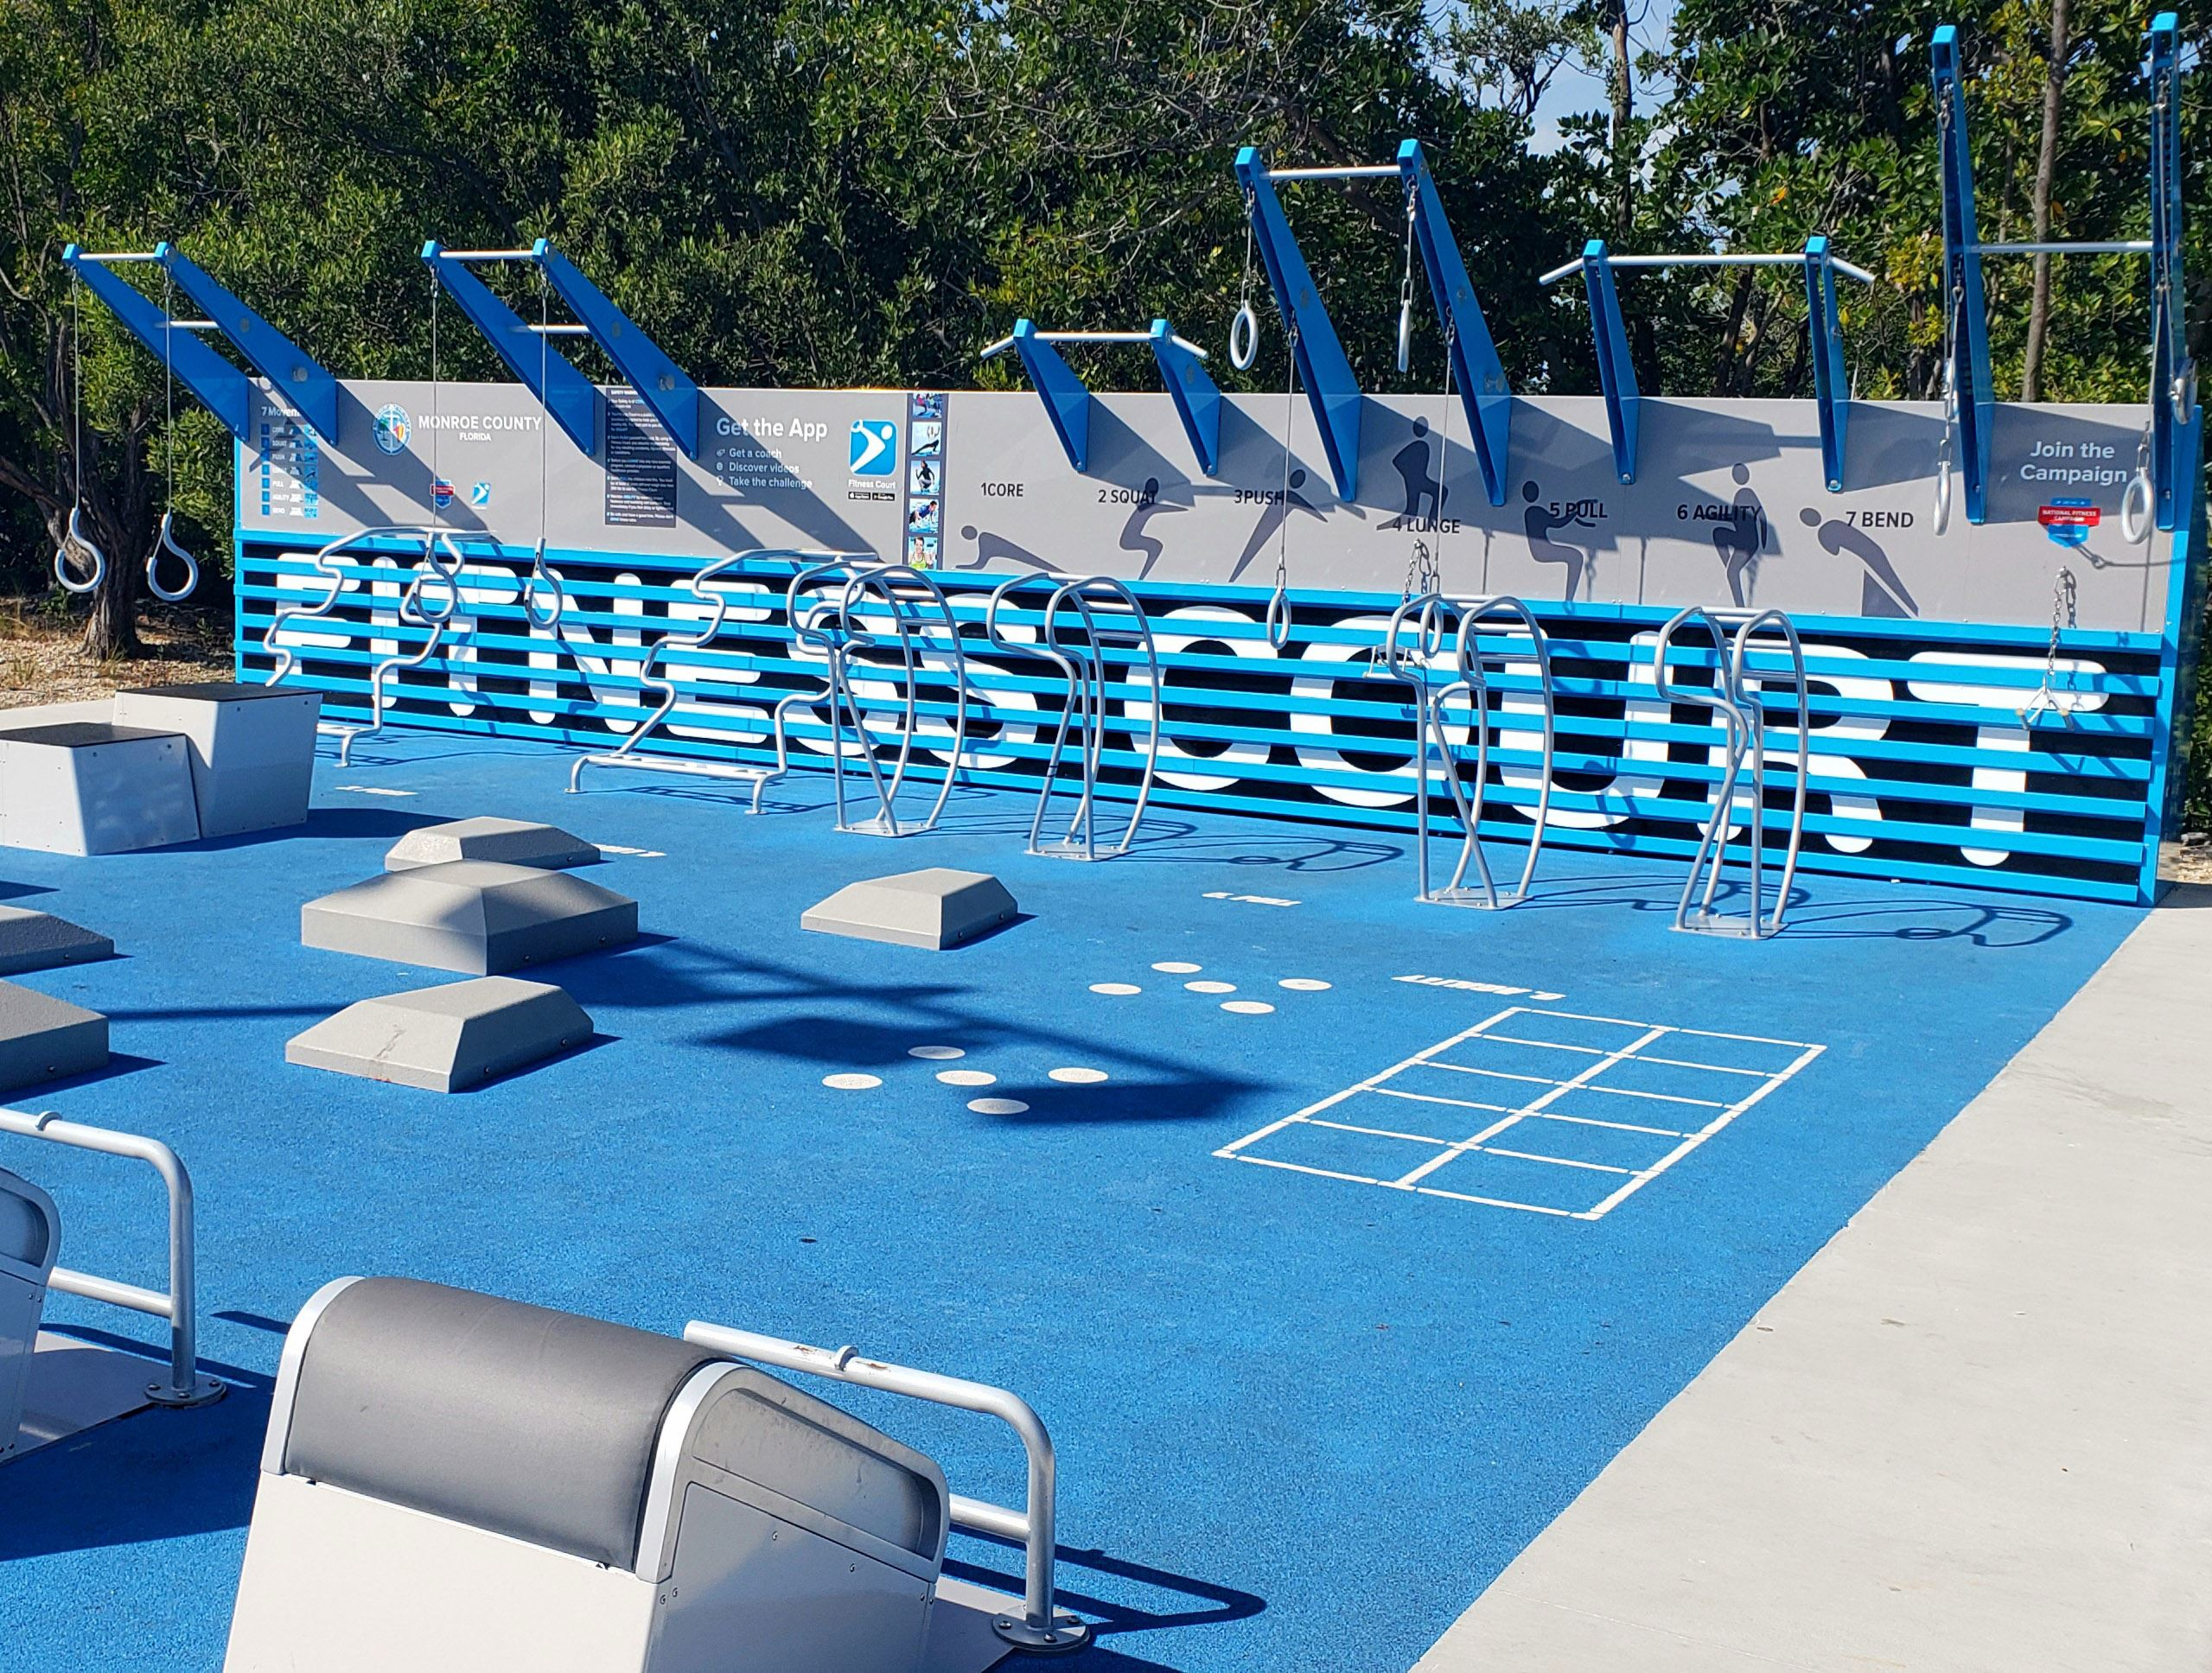 New fitness equipment at Bernstein Park